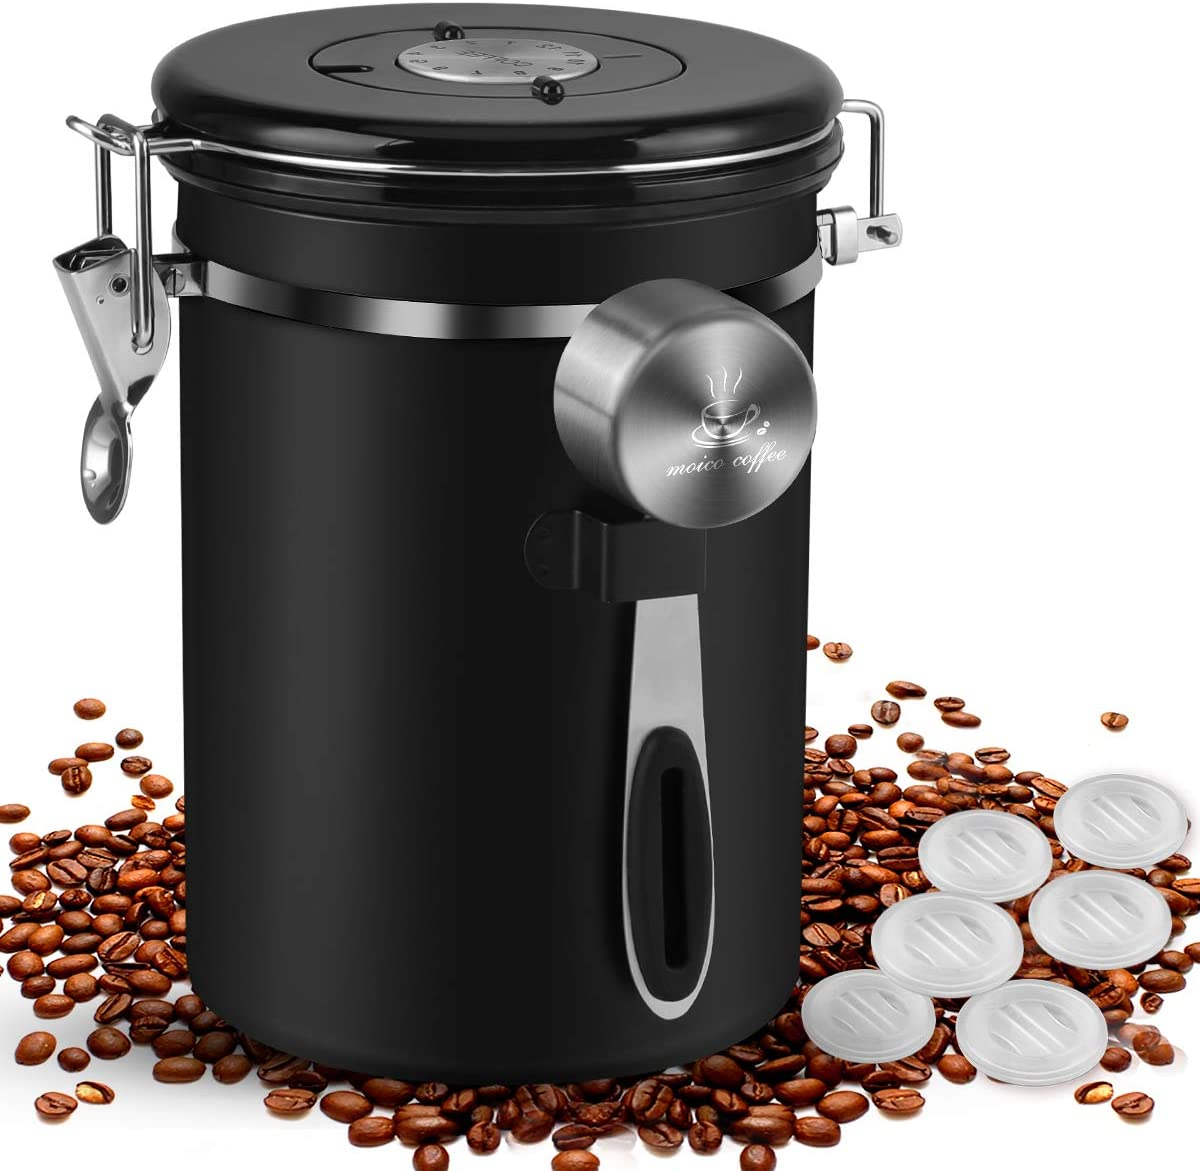 Coffee Canister, MOICO 22oz Stainless Steel Airtight Coffee Bean Storage Container with Scoop, Large Capacity Coffee Jar with Date Tracker, Scale Line, One-Way Co2 Valve (Extra 6 PC) - Black